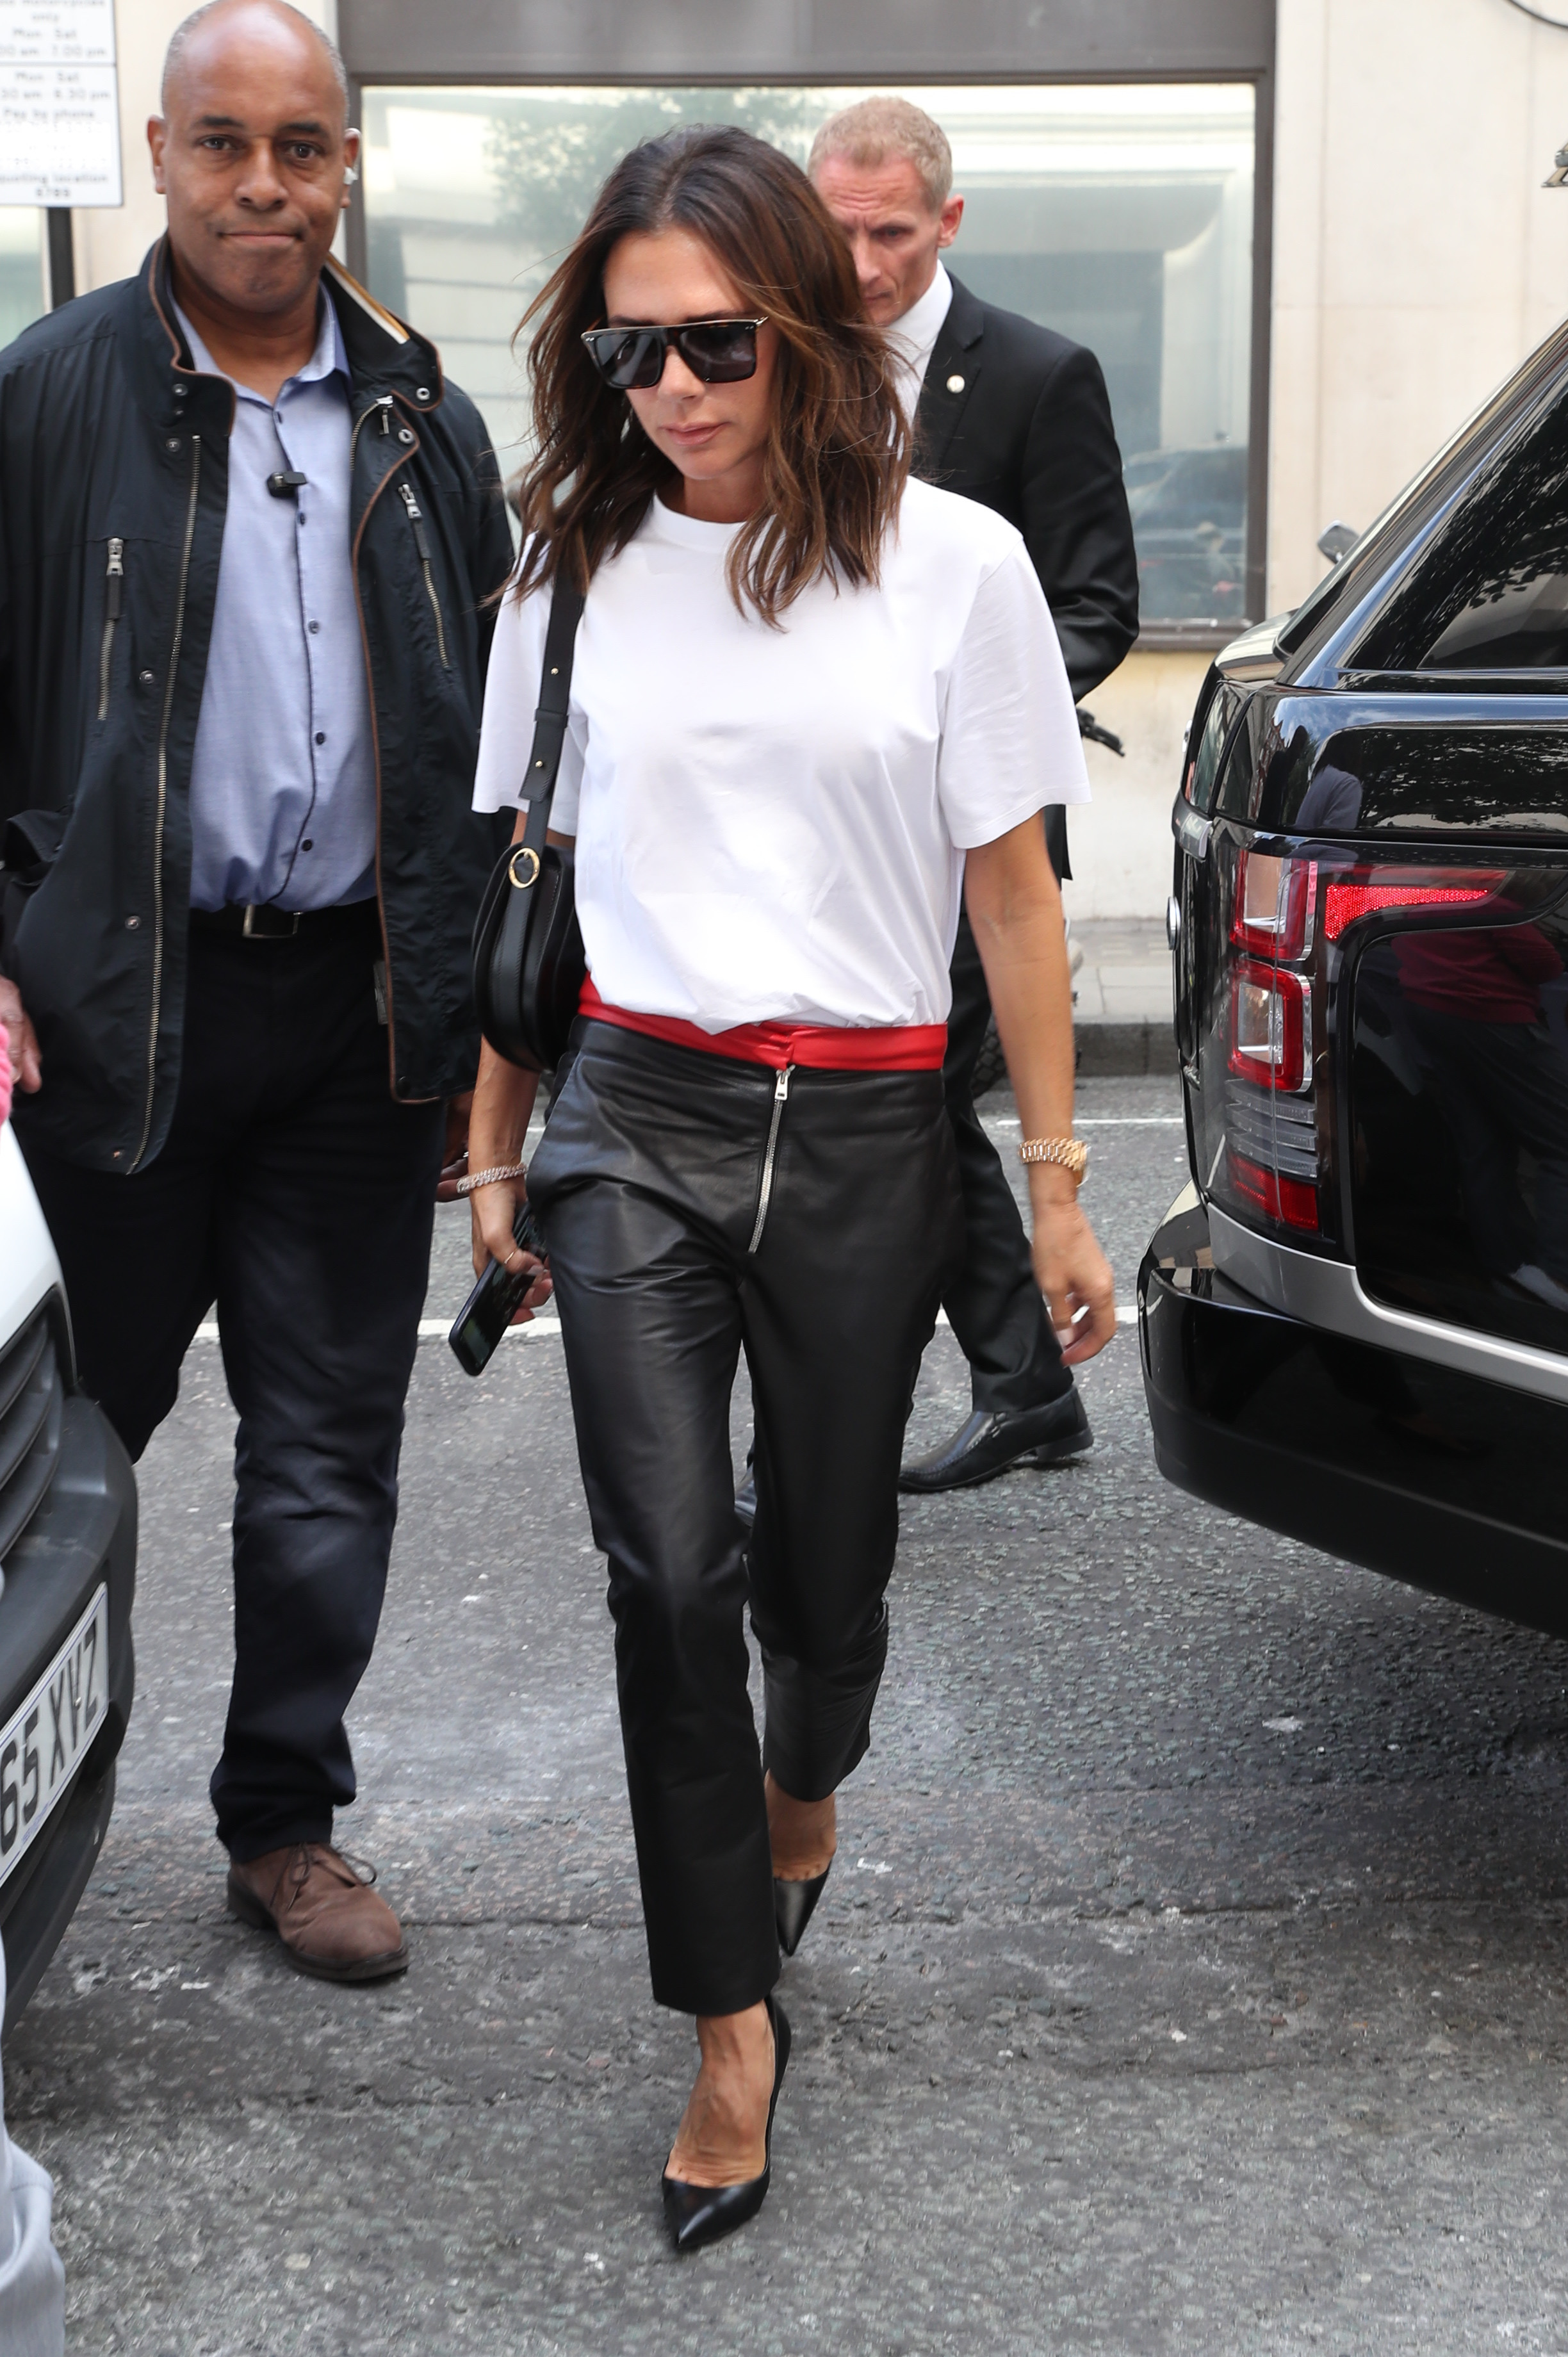 Victoria Beckham out and about, London, UK - 04 Sep 2018